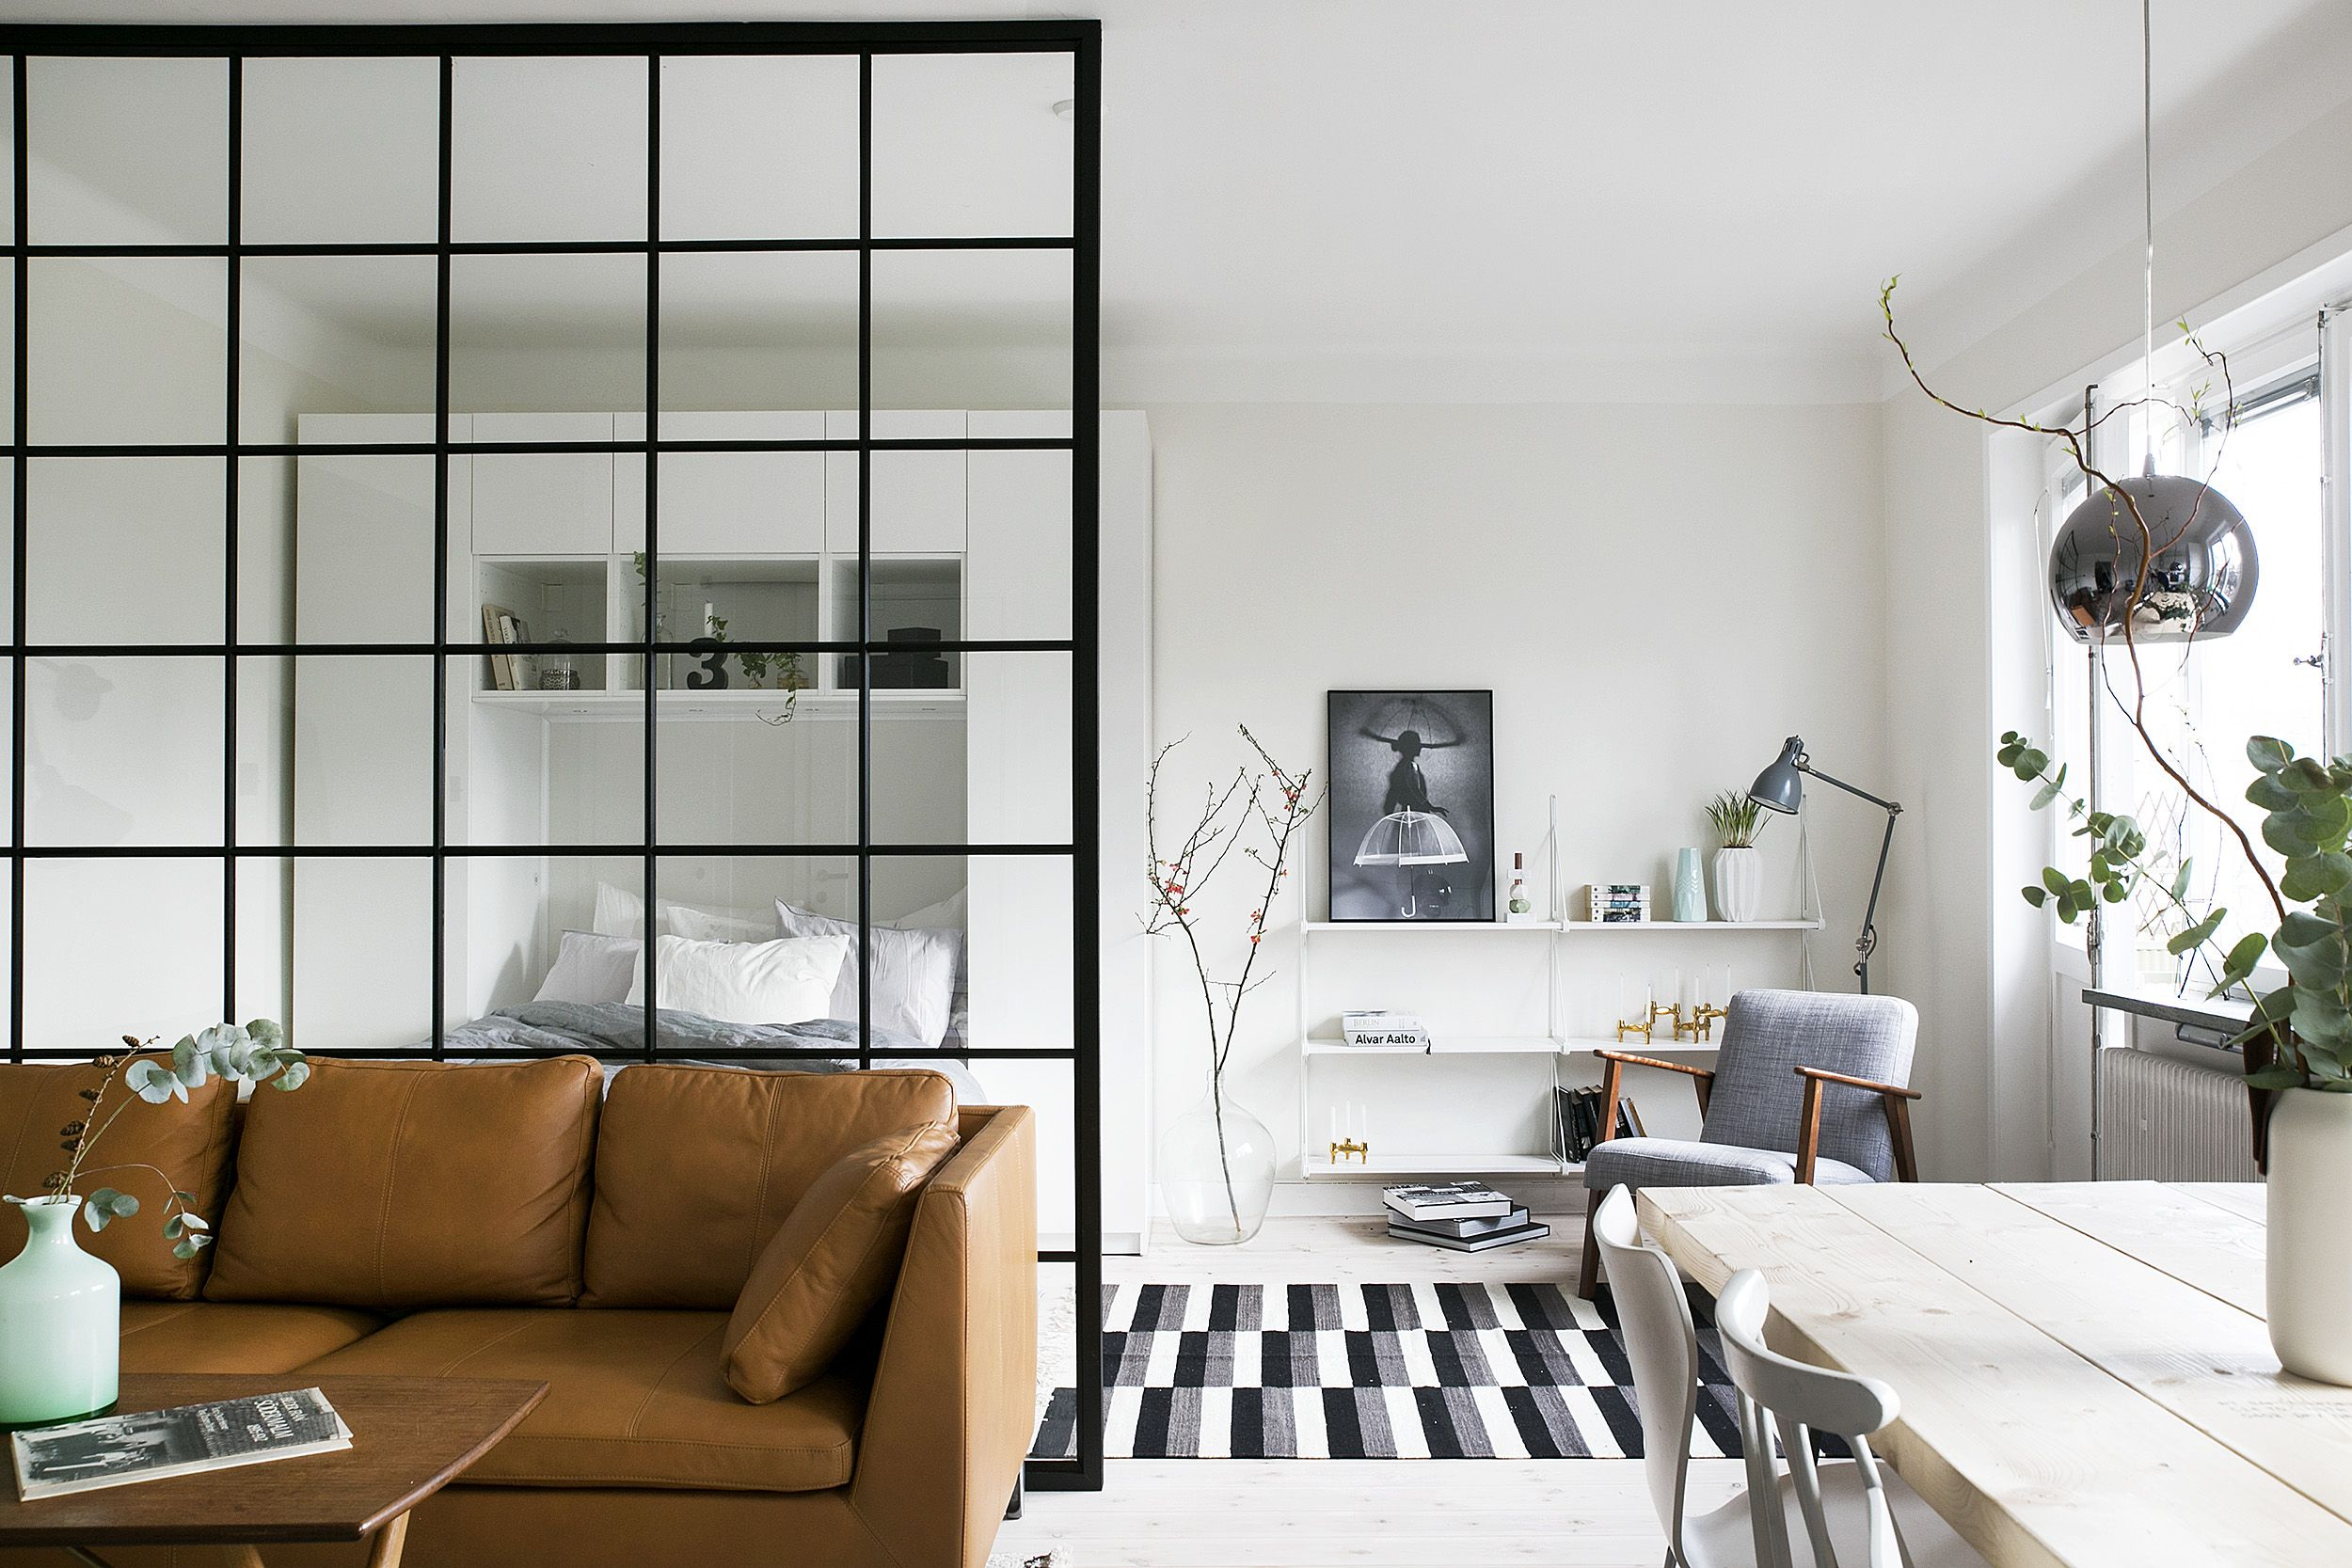 room-divider-ideas-tranebergsva-gen-stockholm-living-room-industry-fantastic-frank-popular-copy-1561401887